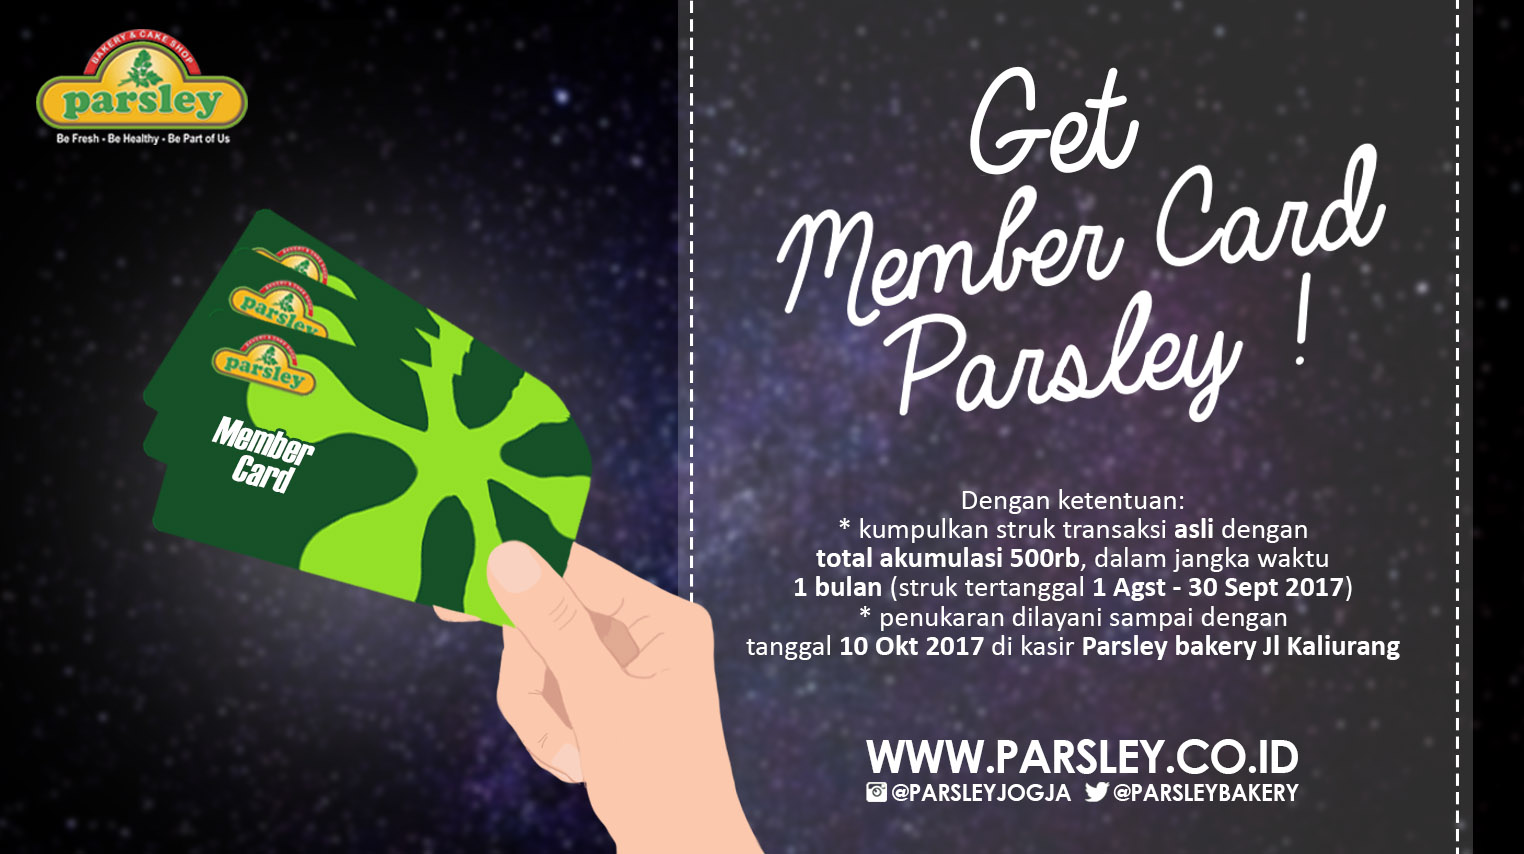 Get Member Card Parsley